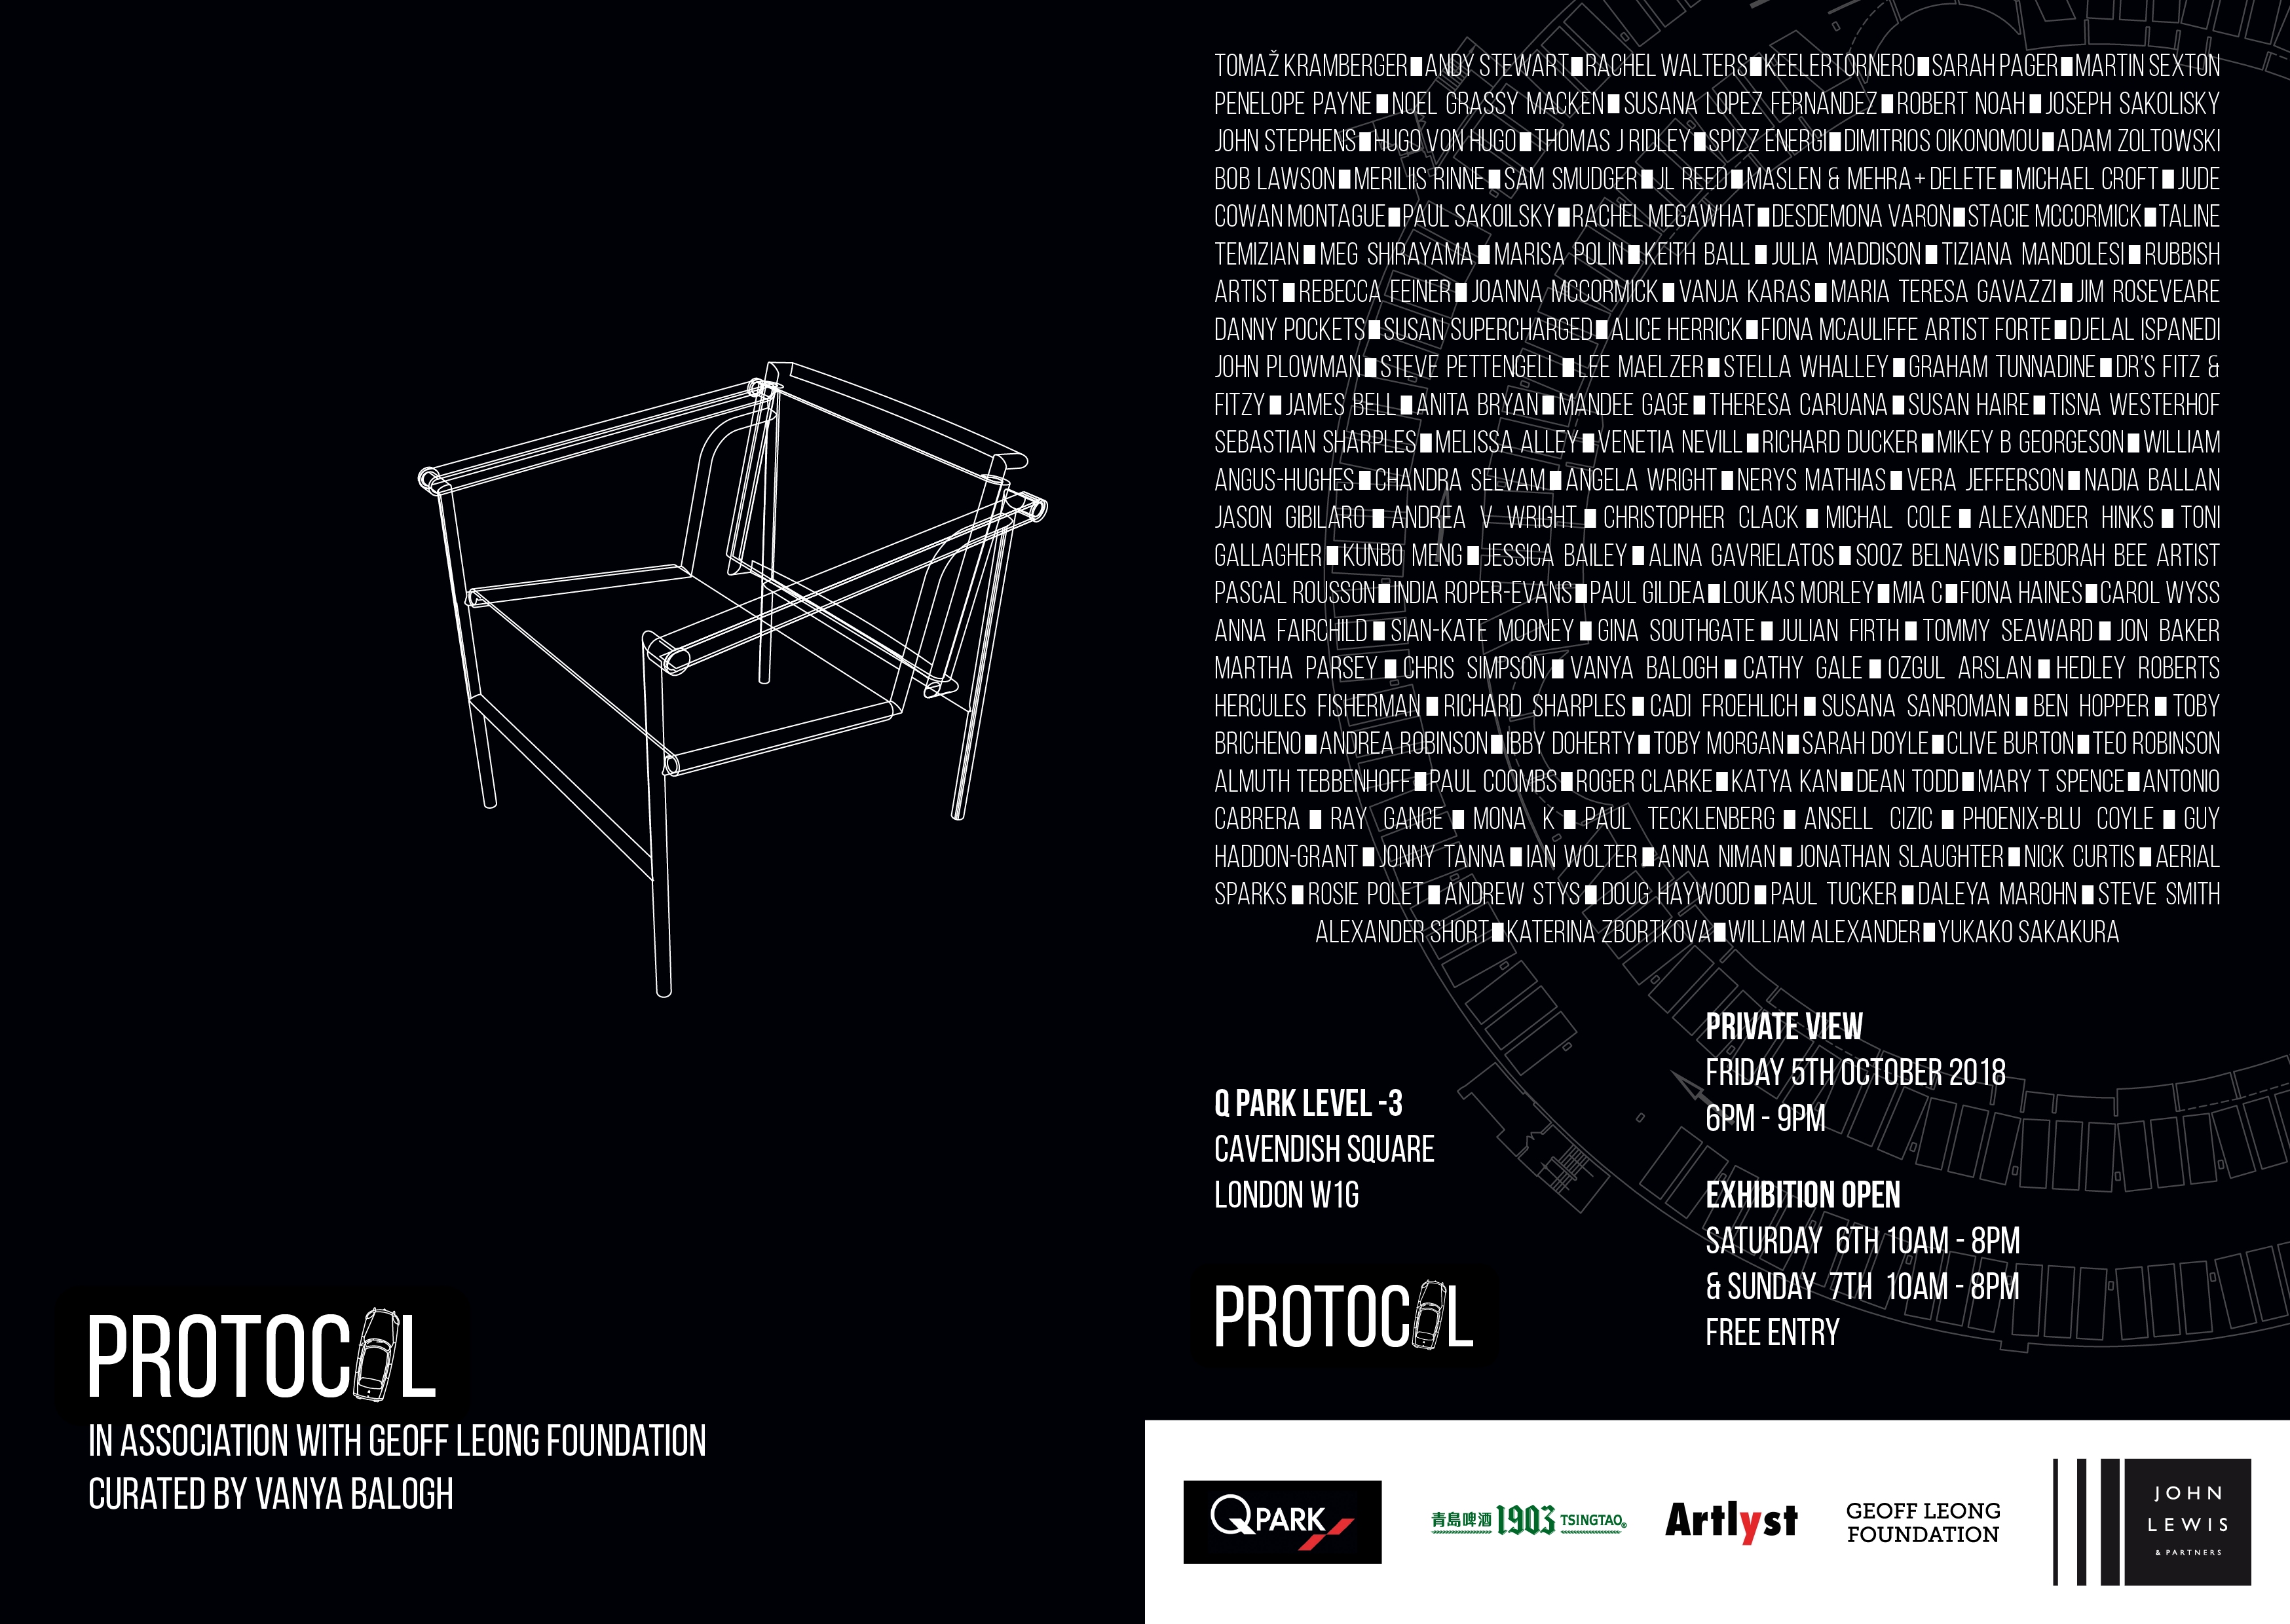 Protocol Exhibition Invite - Cavendish Square - 2 pages.png